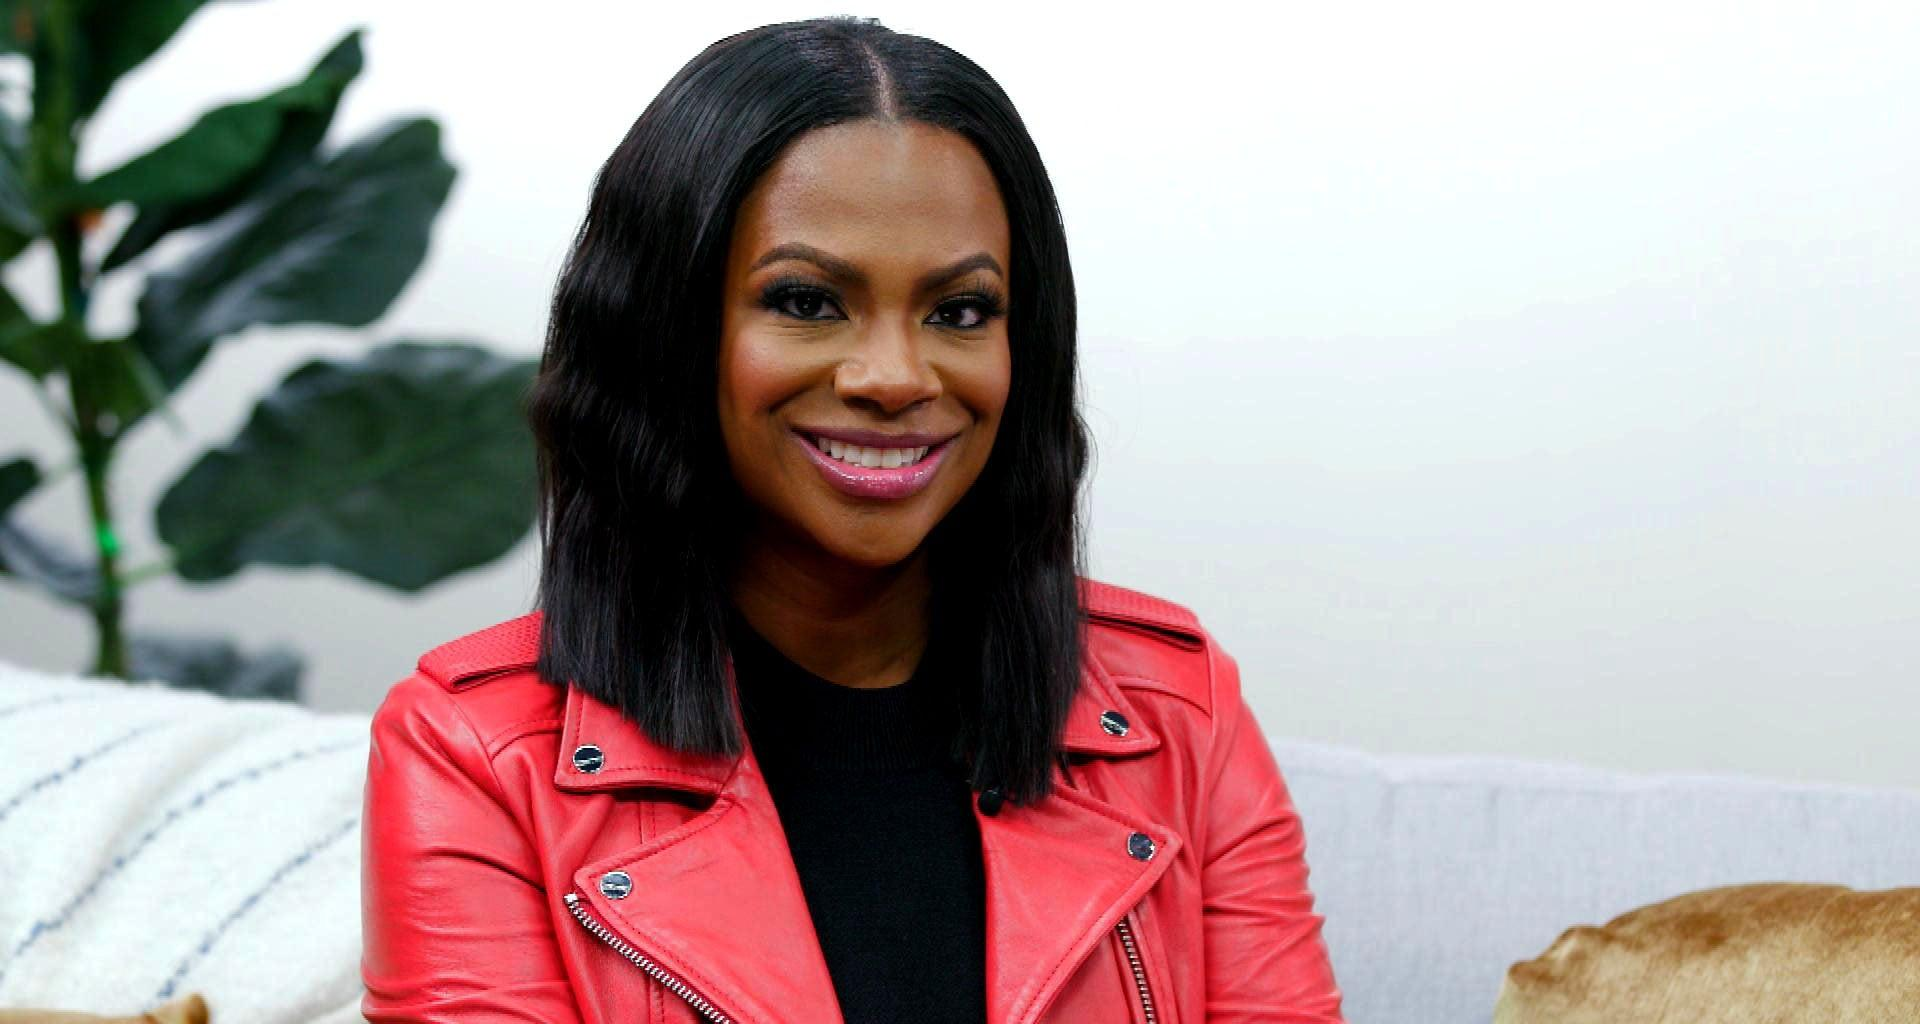 Kandi Burruss Wishes Happy Birthday To A Special Person - See Her Message